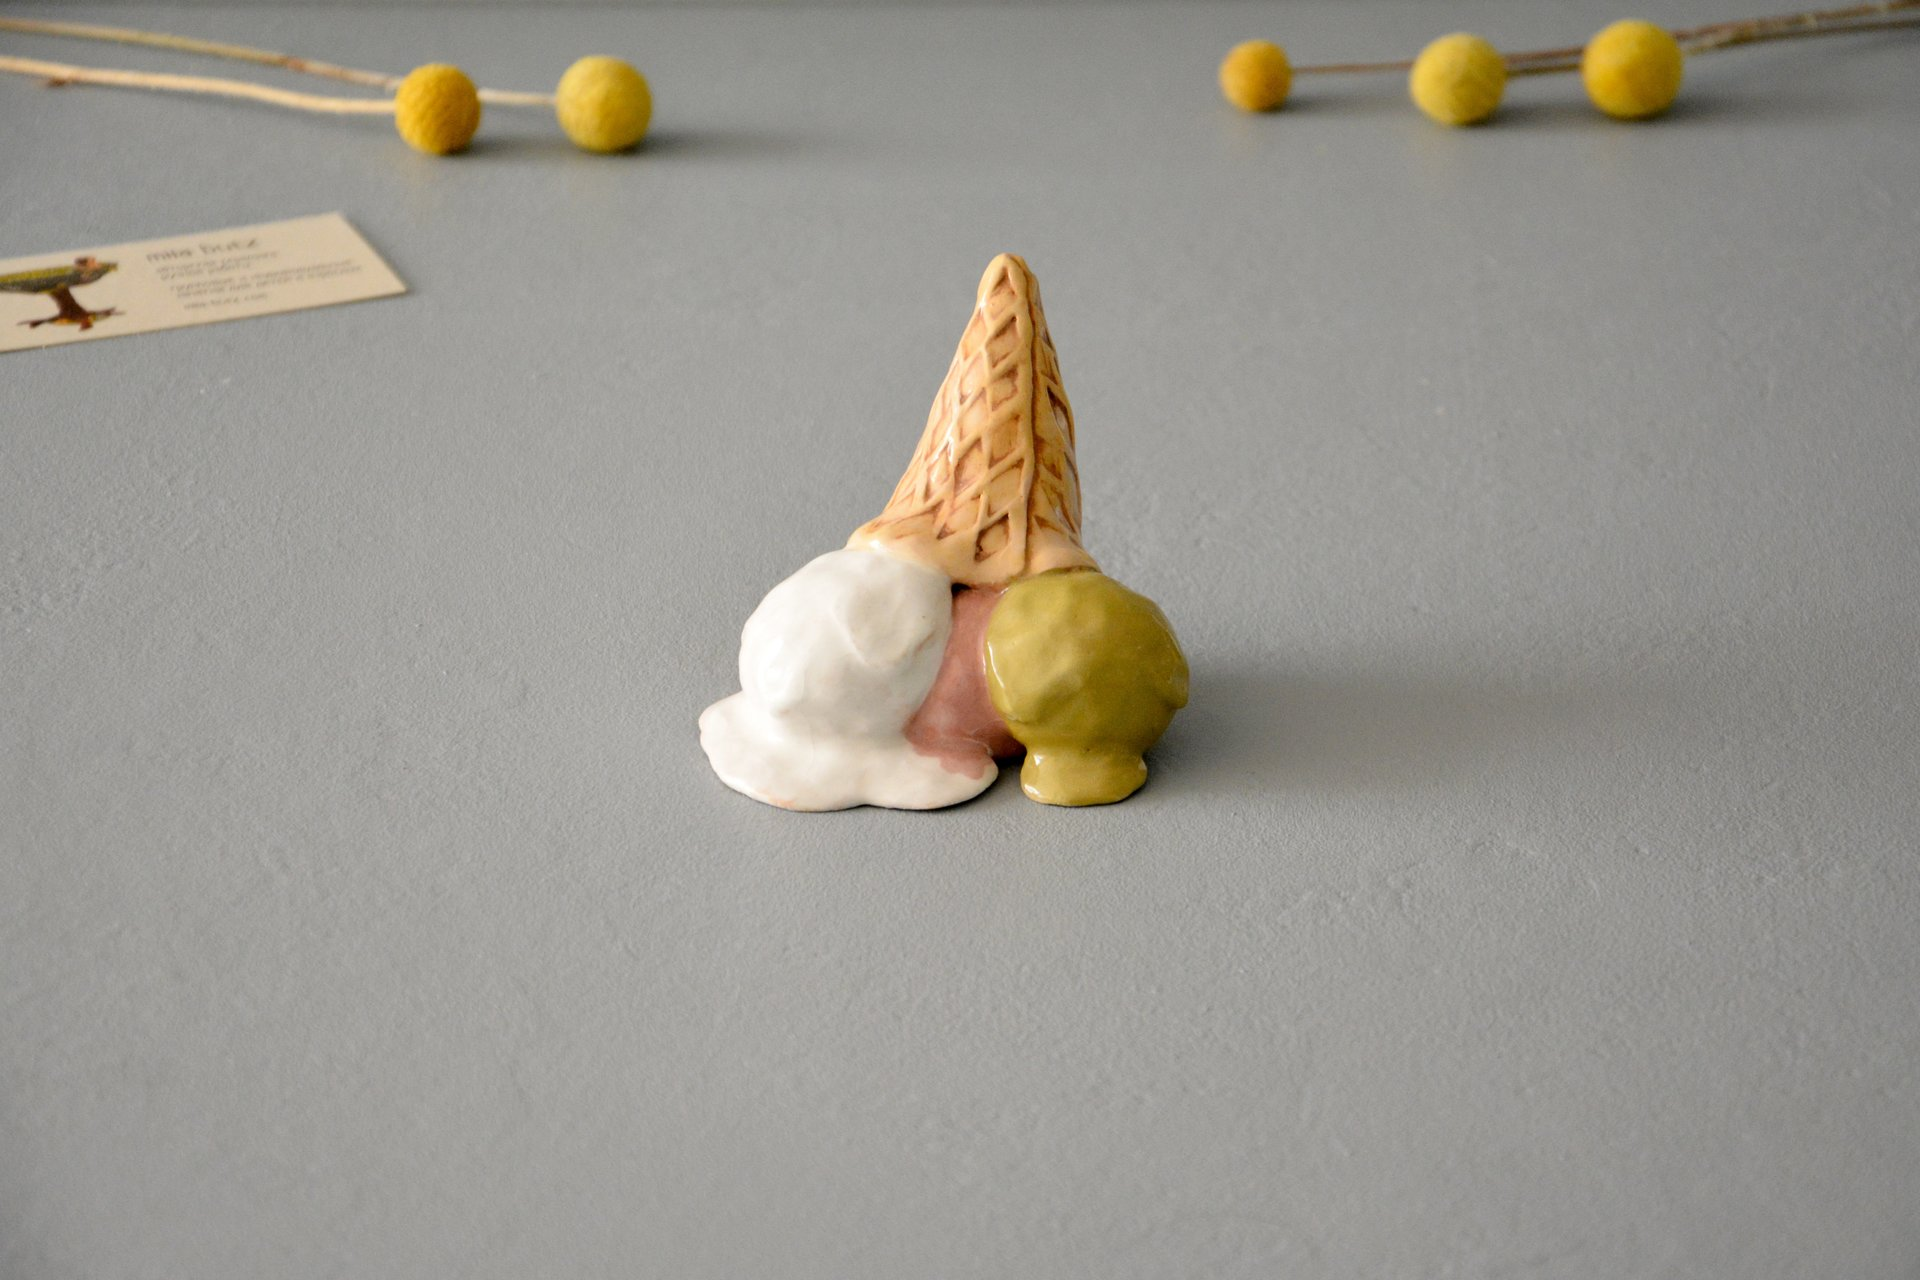 Fallen Ice Cream - Ceramic other figures, height - 5 cm, photo 1 of 4.